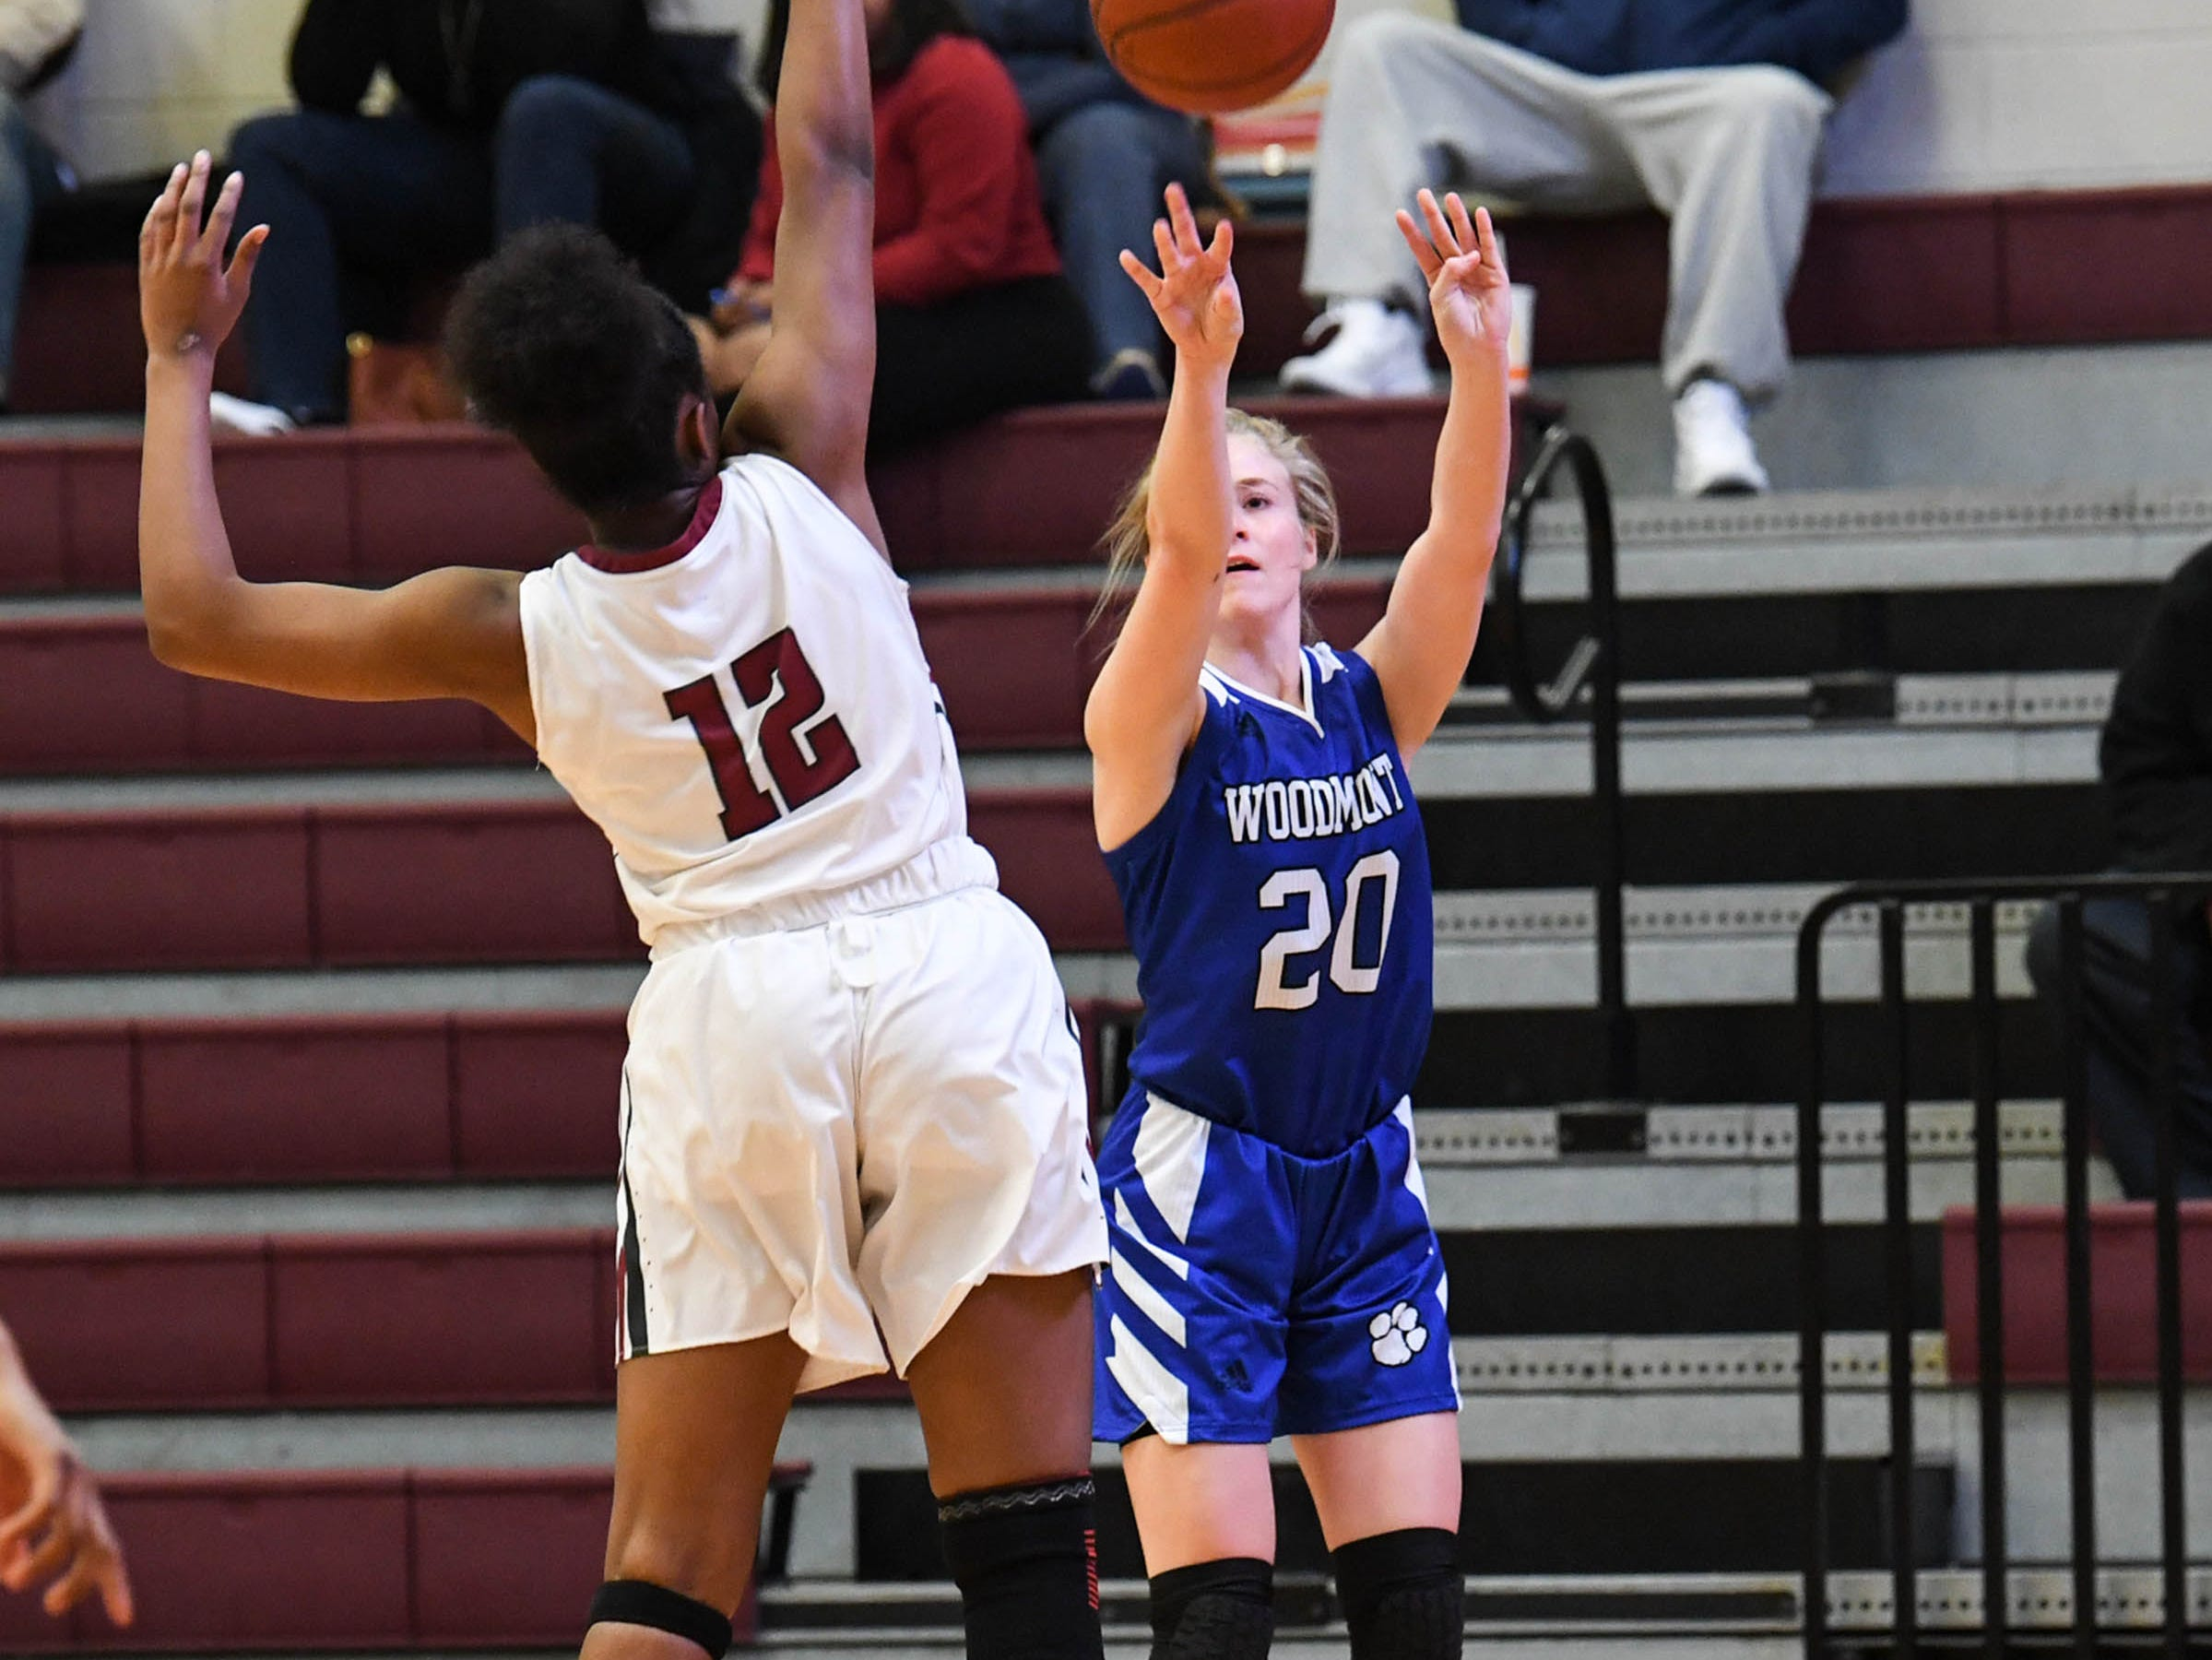 Woodmont senior Xan Rowland(20), right, shoots a three-pointer near Westside freshman Branya Pruitt(12) during the first quarter at Westside High School in Anderson on Tuesday.